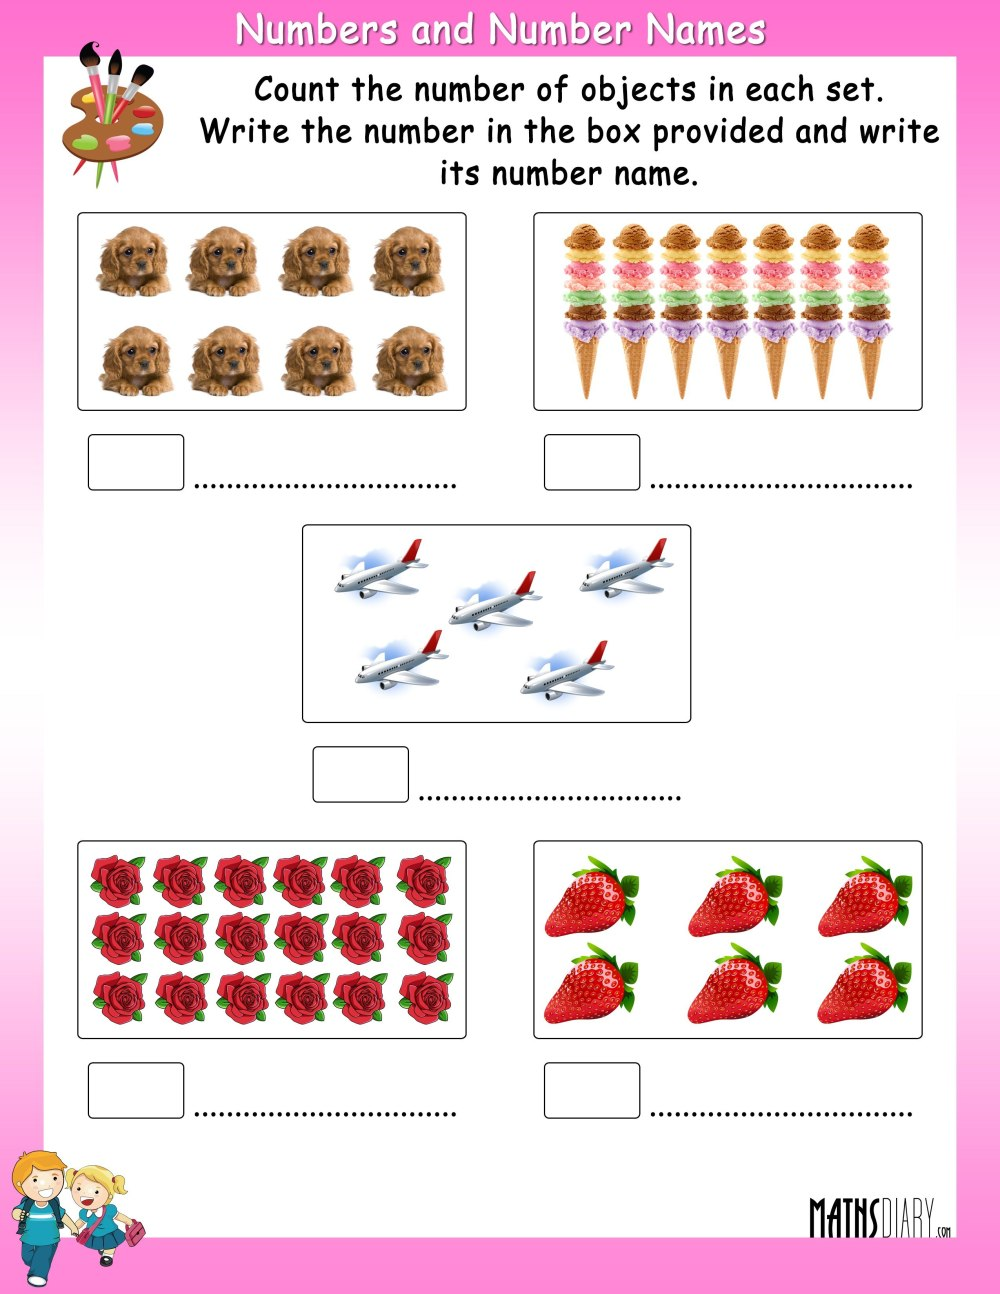 medium resolution of Count the objects in each set and write its number and number name-  Worksheets - Math Worksheets - MathsDiary.com